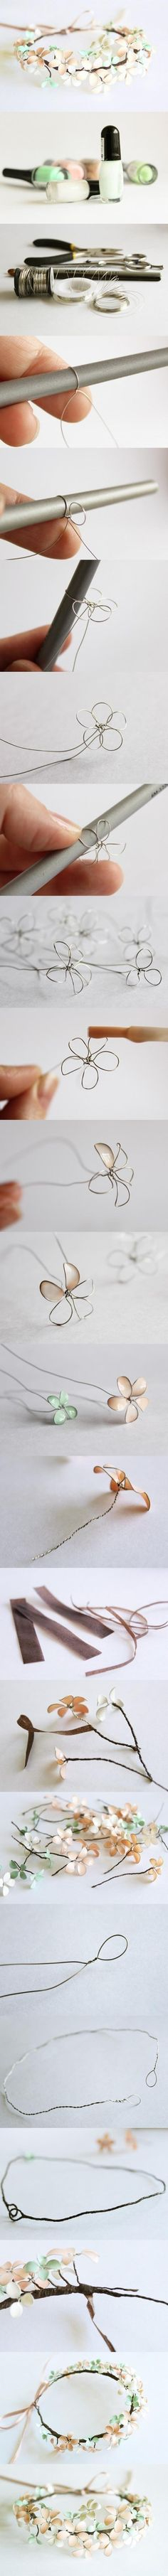 With thin wire and nail polish to do some pretty flowers